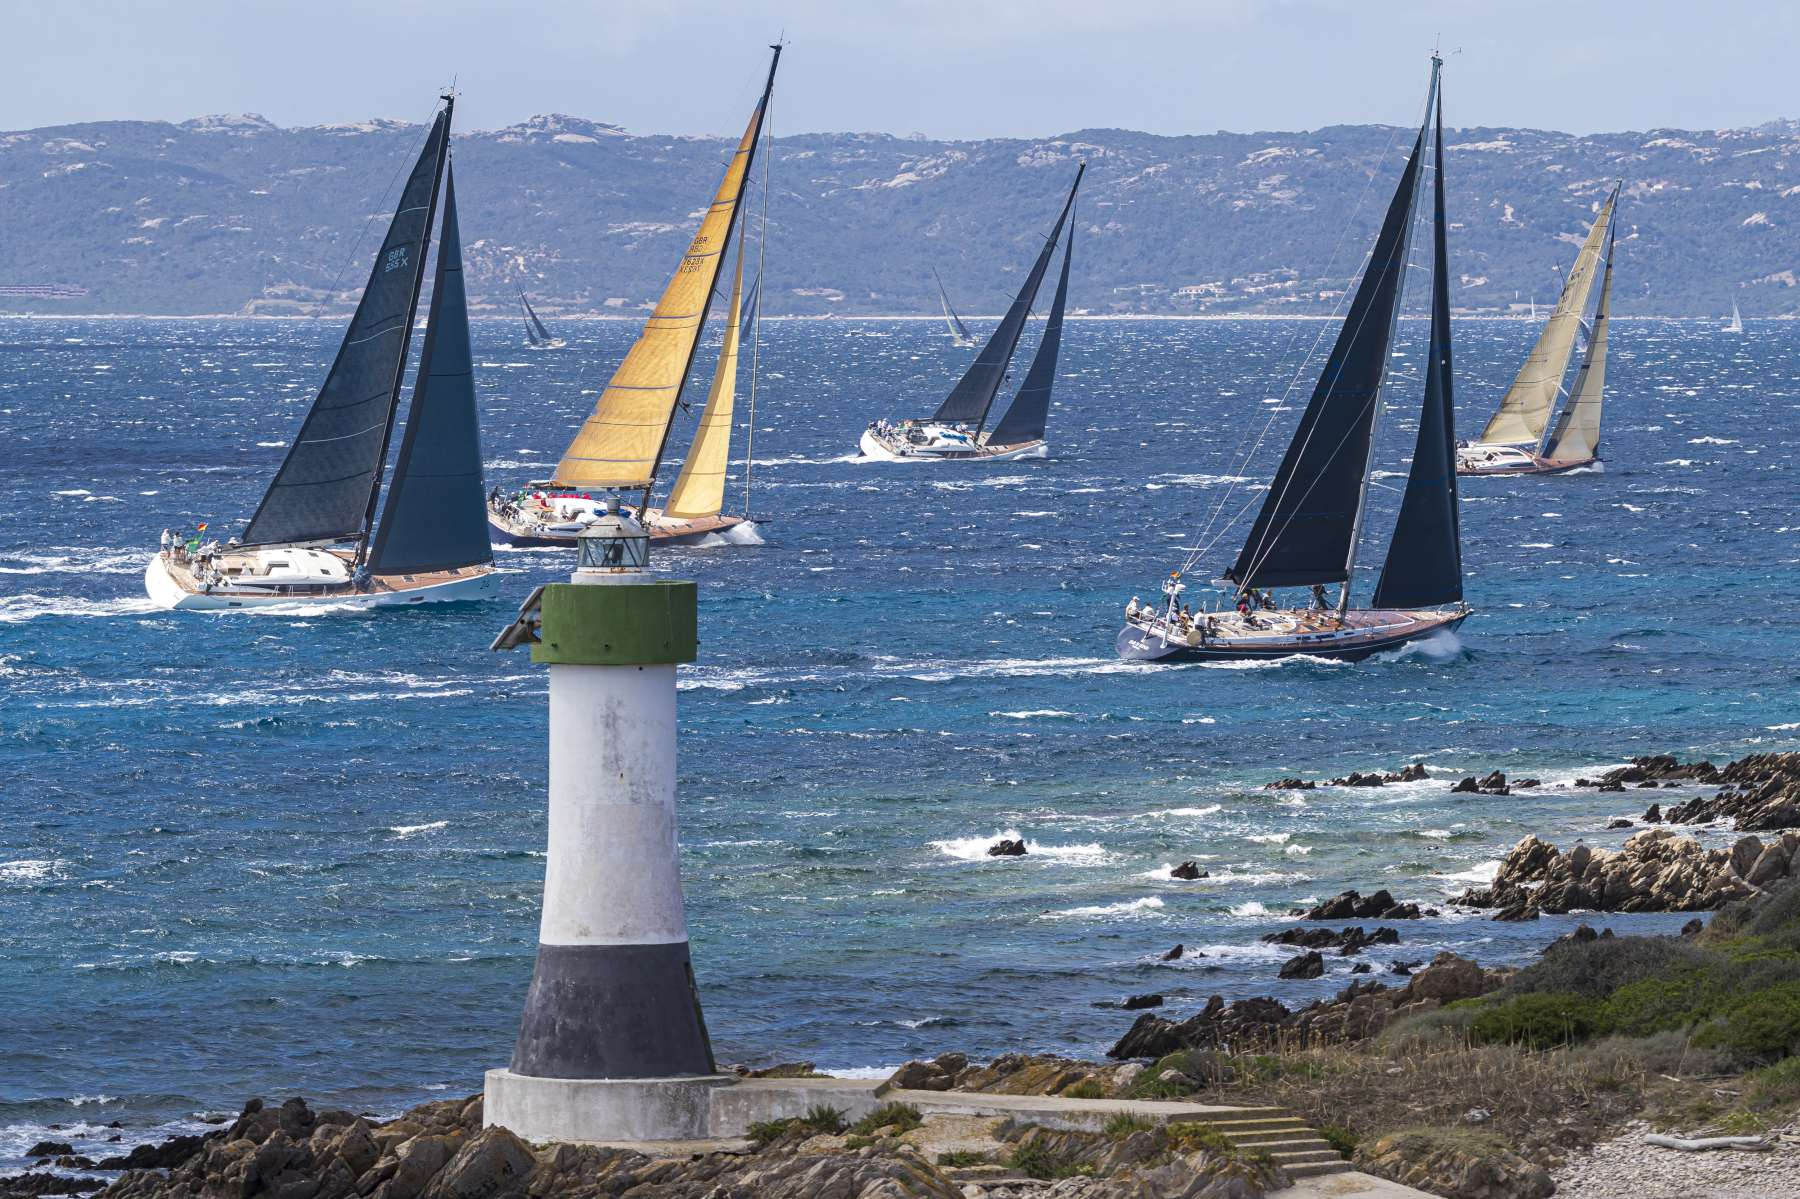 Mistral puts on a great show at the Maxi Yacht Rolex Cup  - NEWS - Yacht Club Costa Smeralda